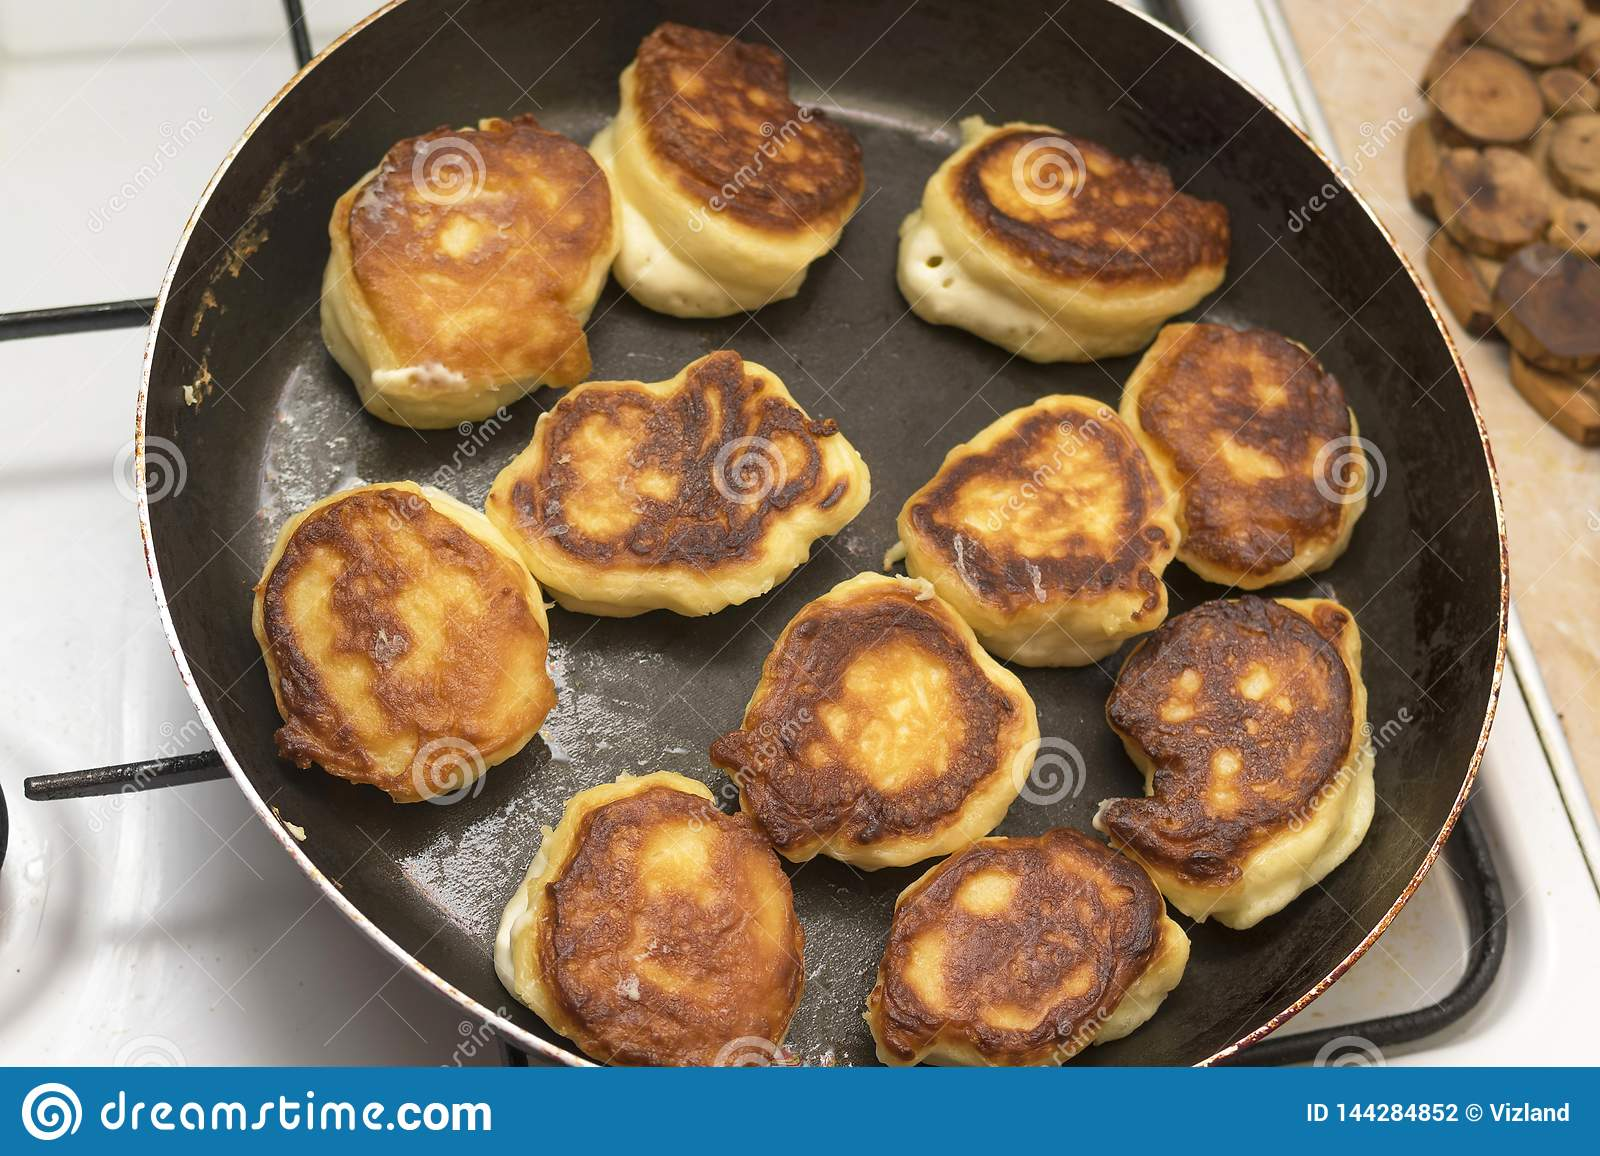 Fritters or dumplings are fried in a frying pan on vegetable oil, the top view